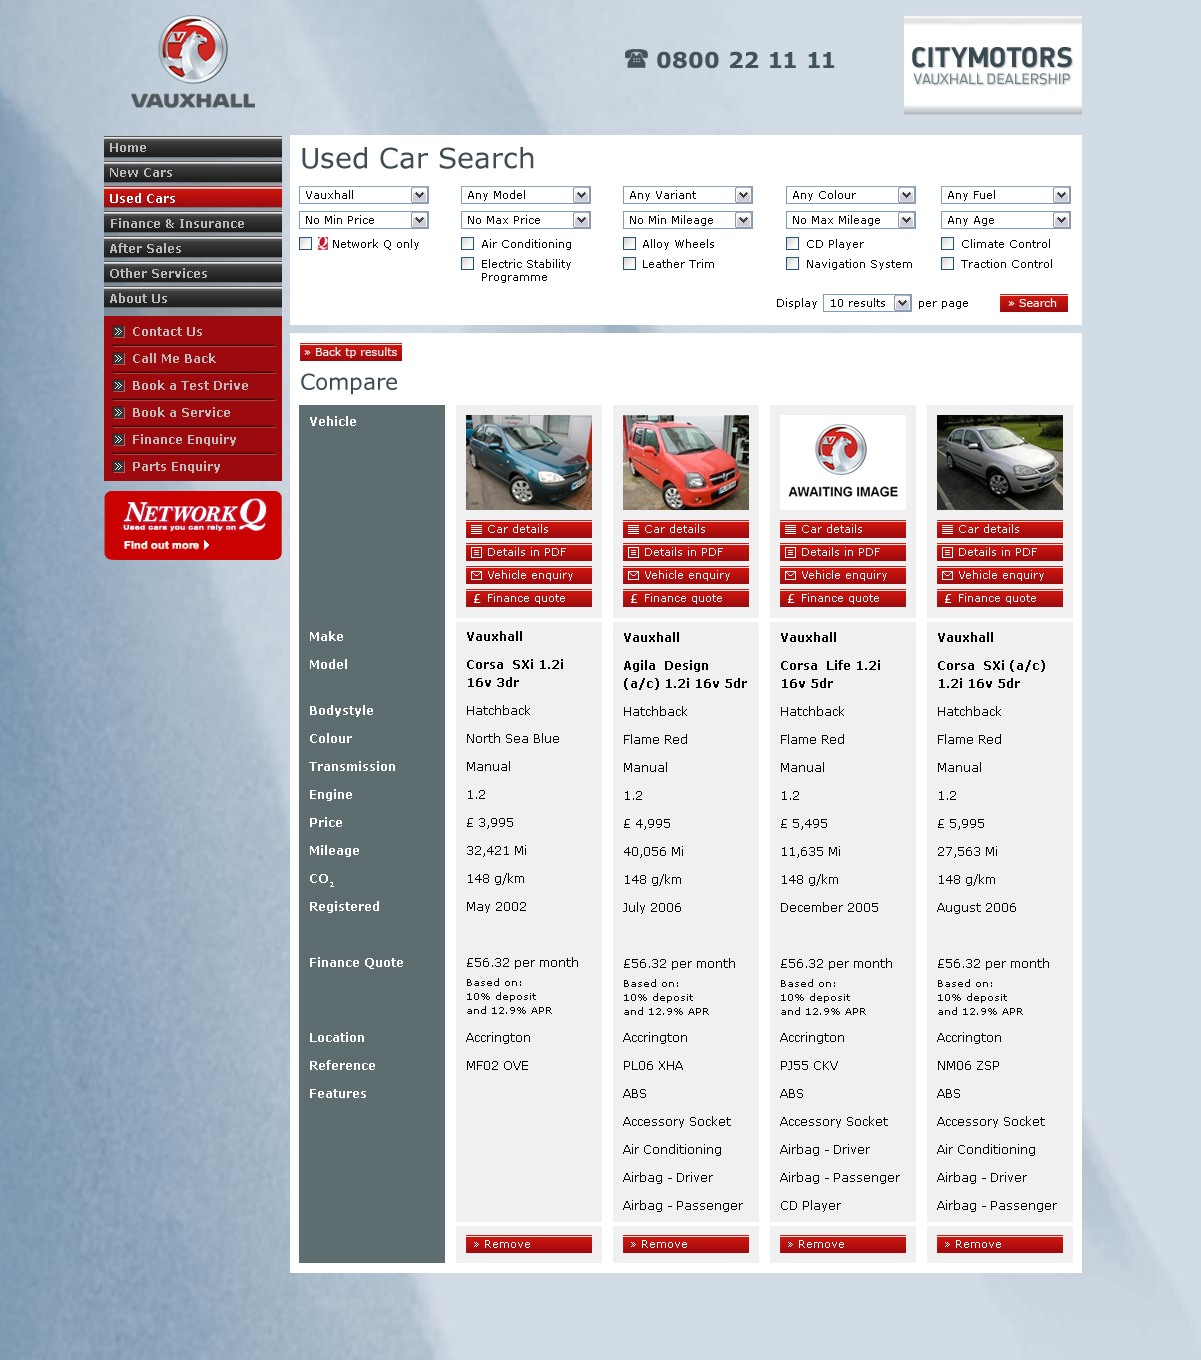 Vauxhall Dealers – Compare